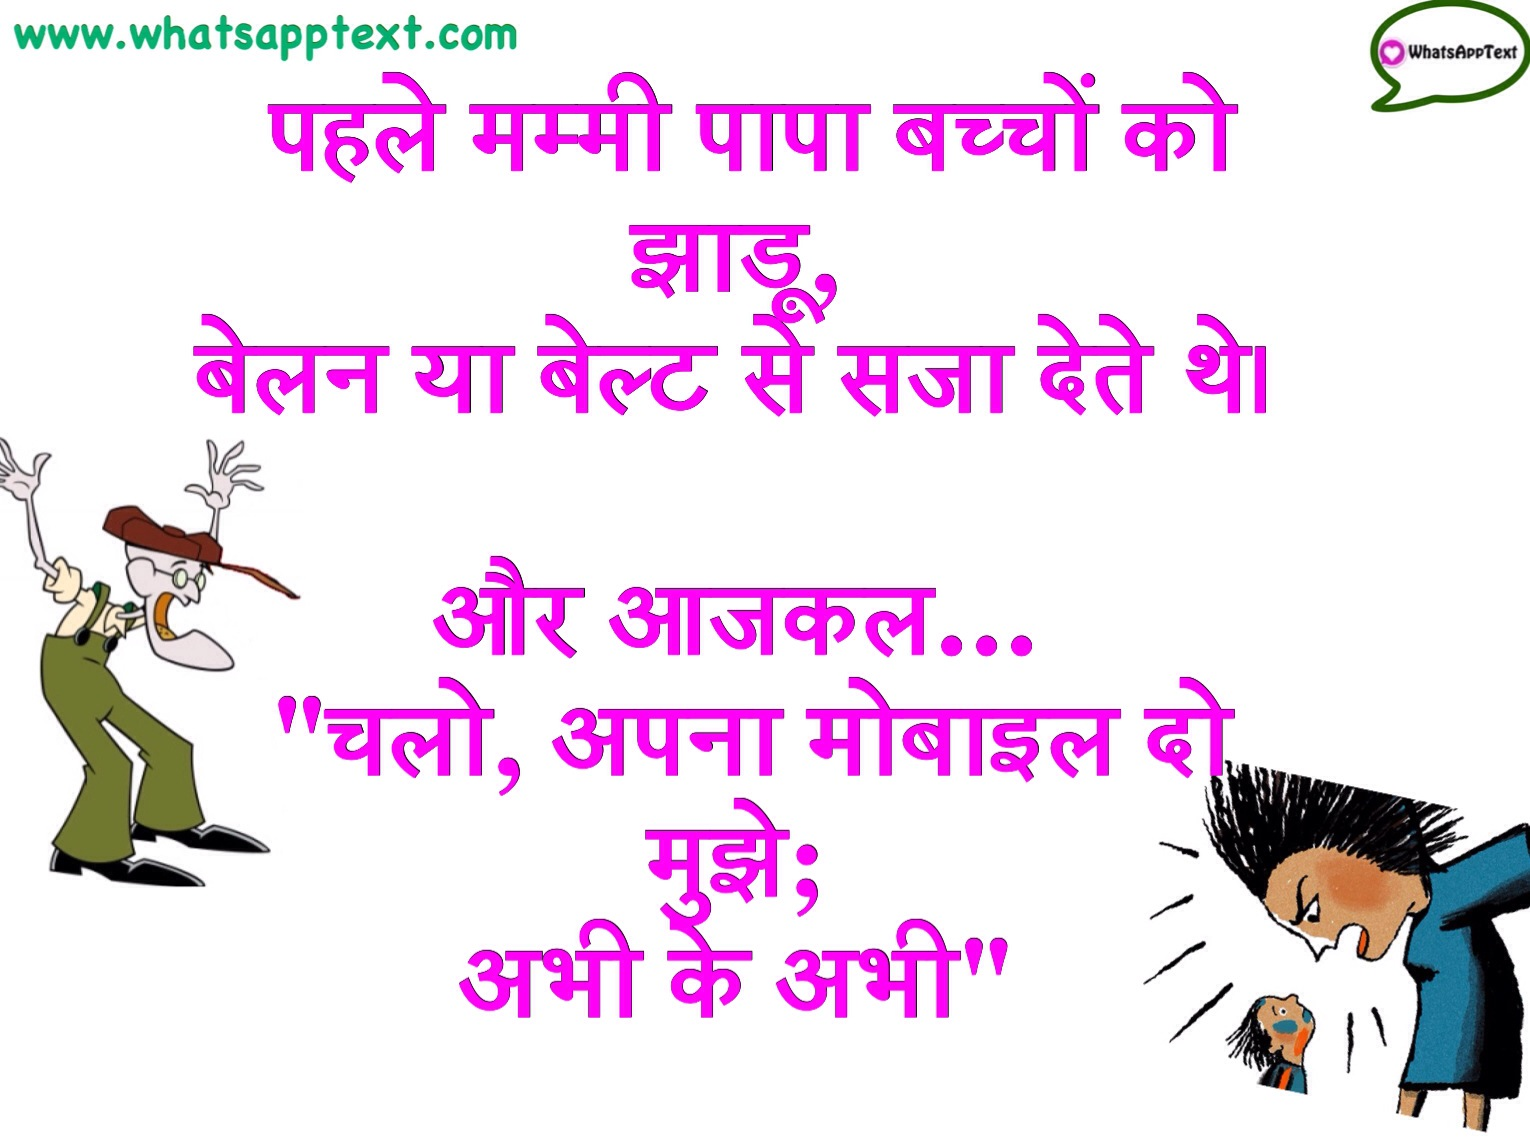 Hindi Jokes - Bachche aur Mummy Papa - WhatsApp Text | Jokes | SMS ...